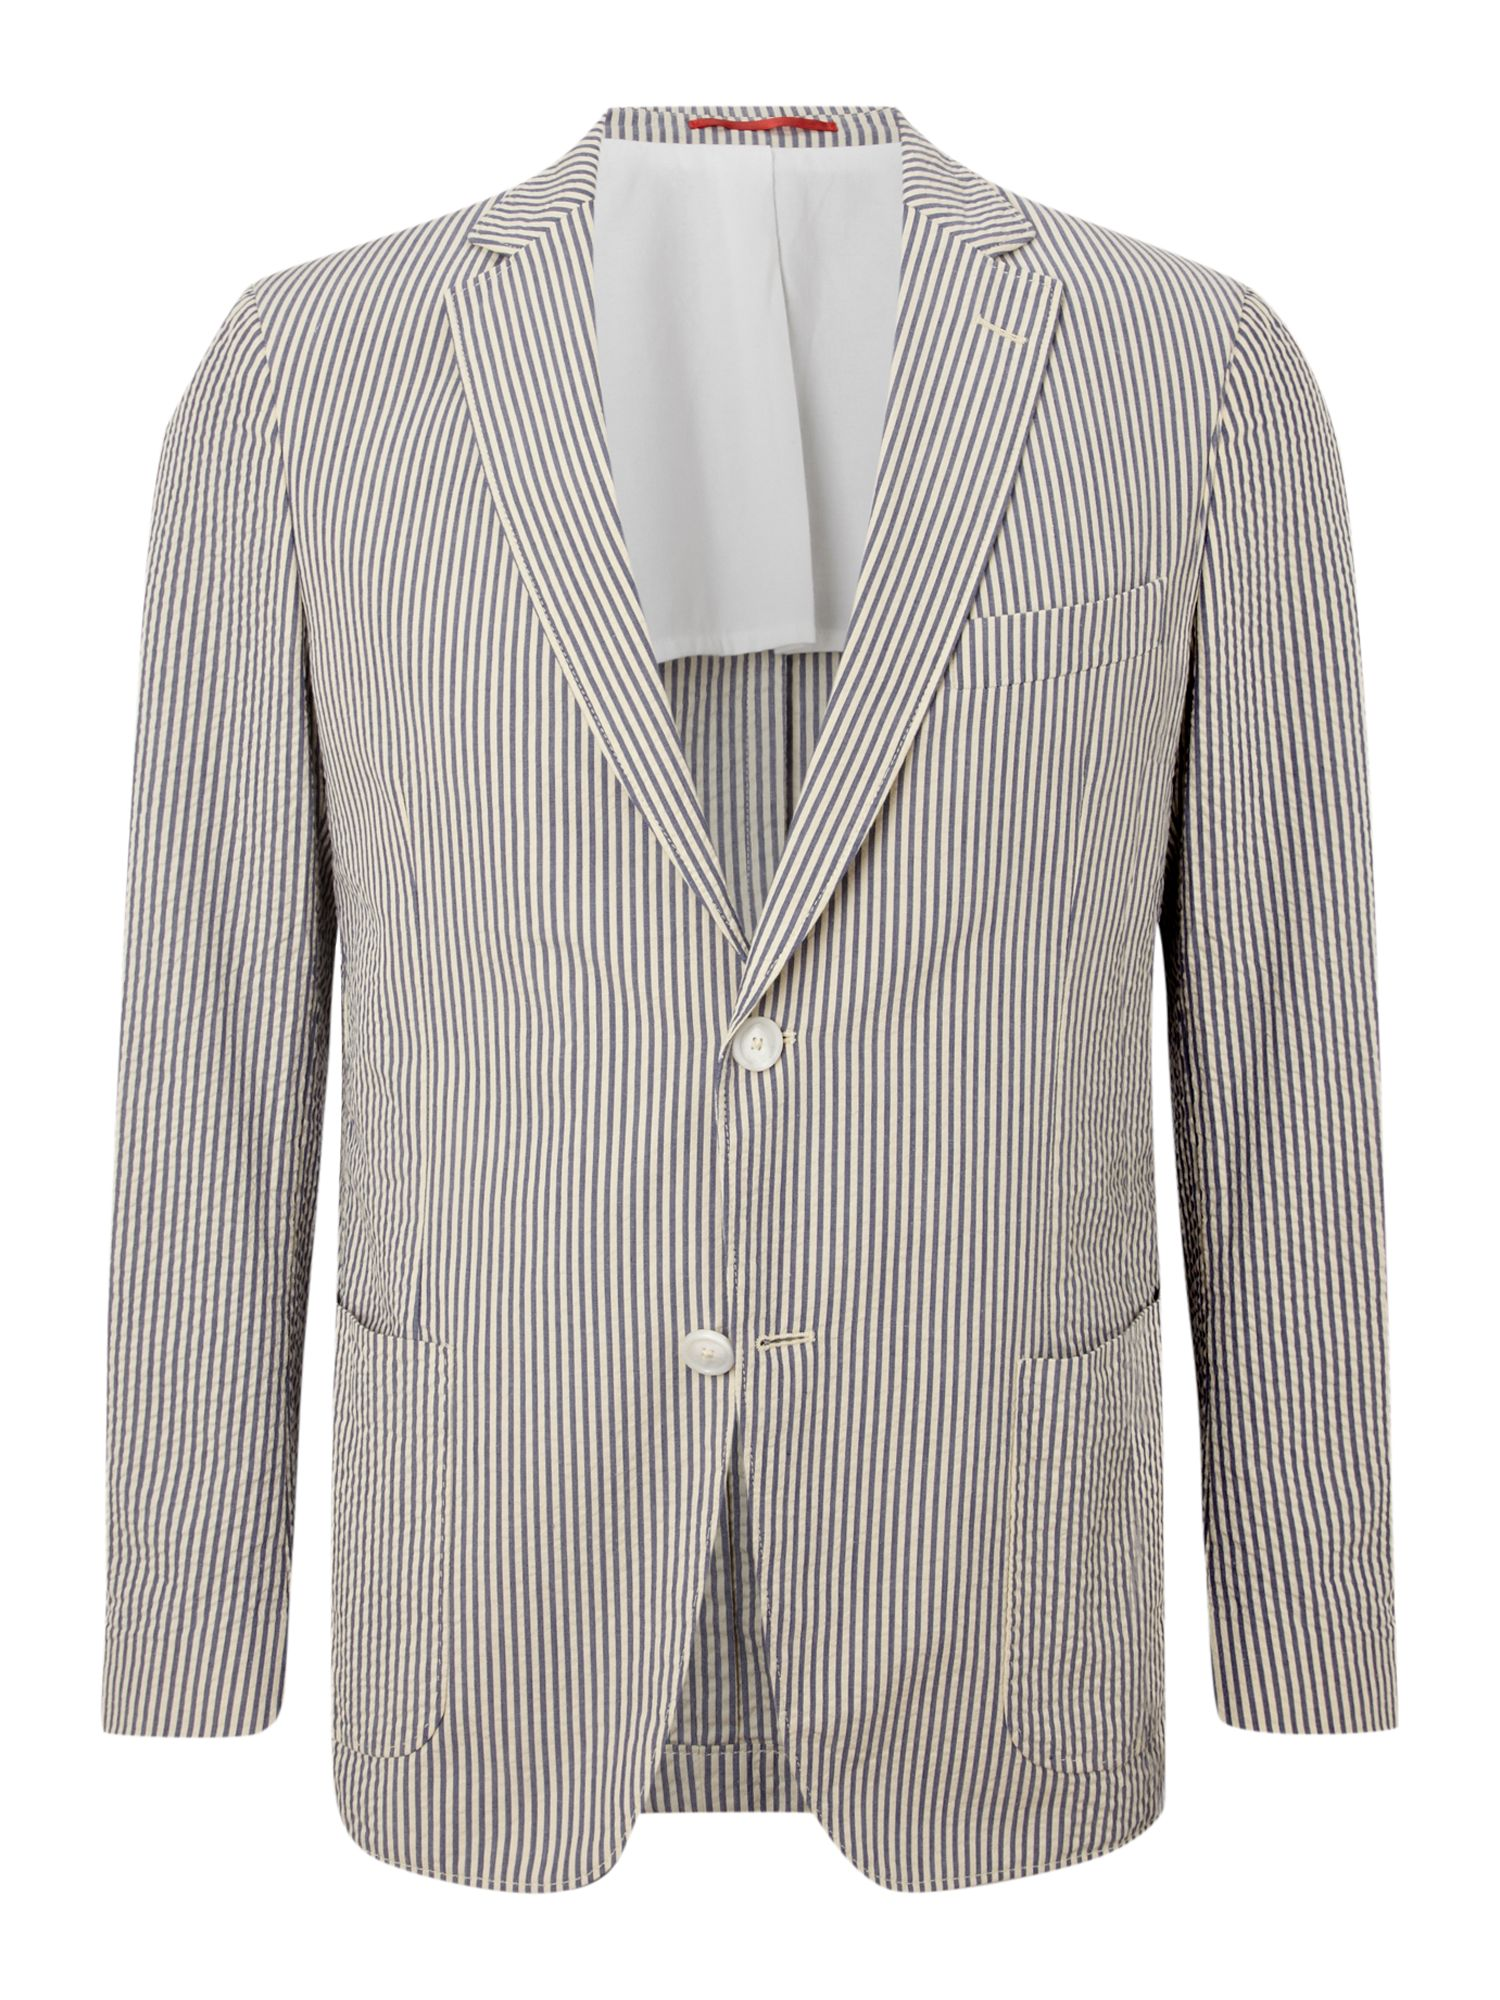 Striped Seersucker blazer